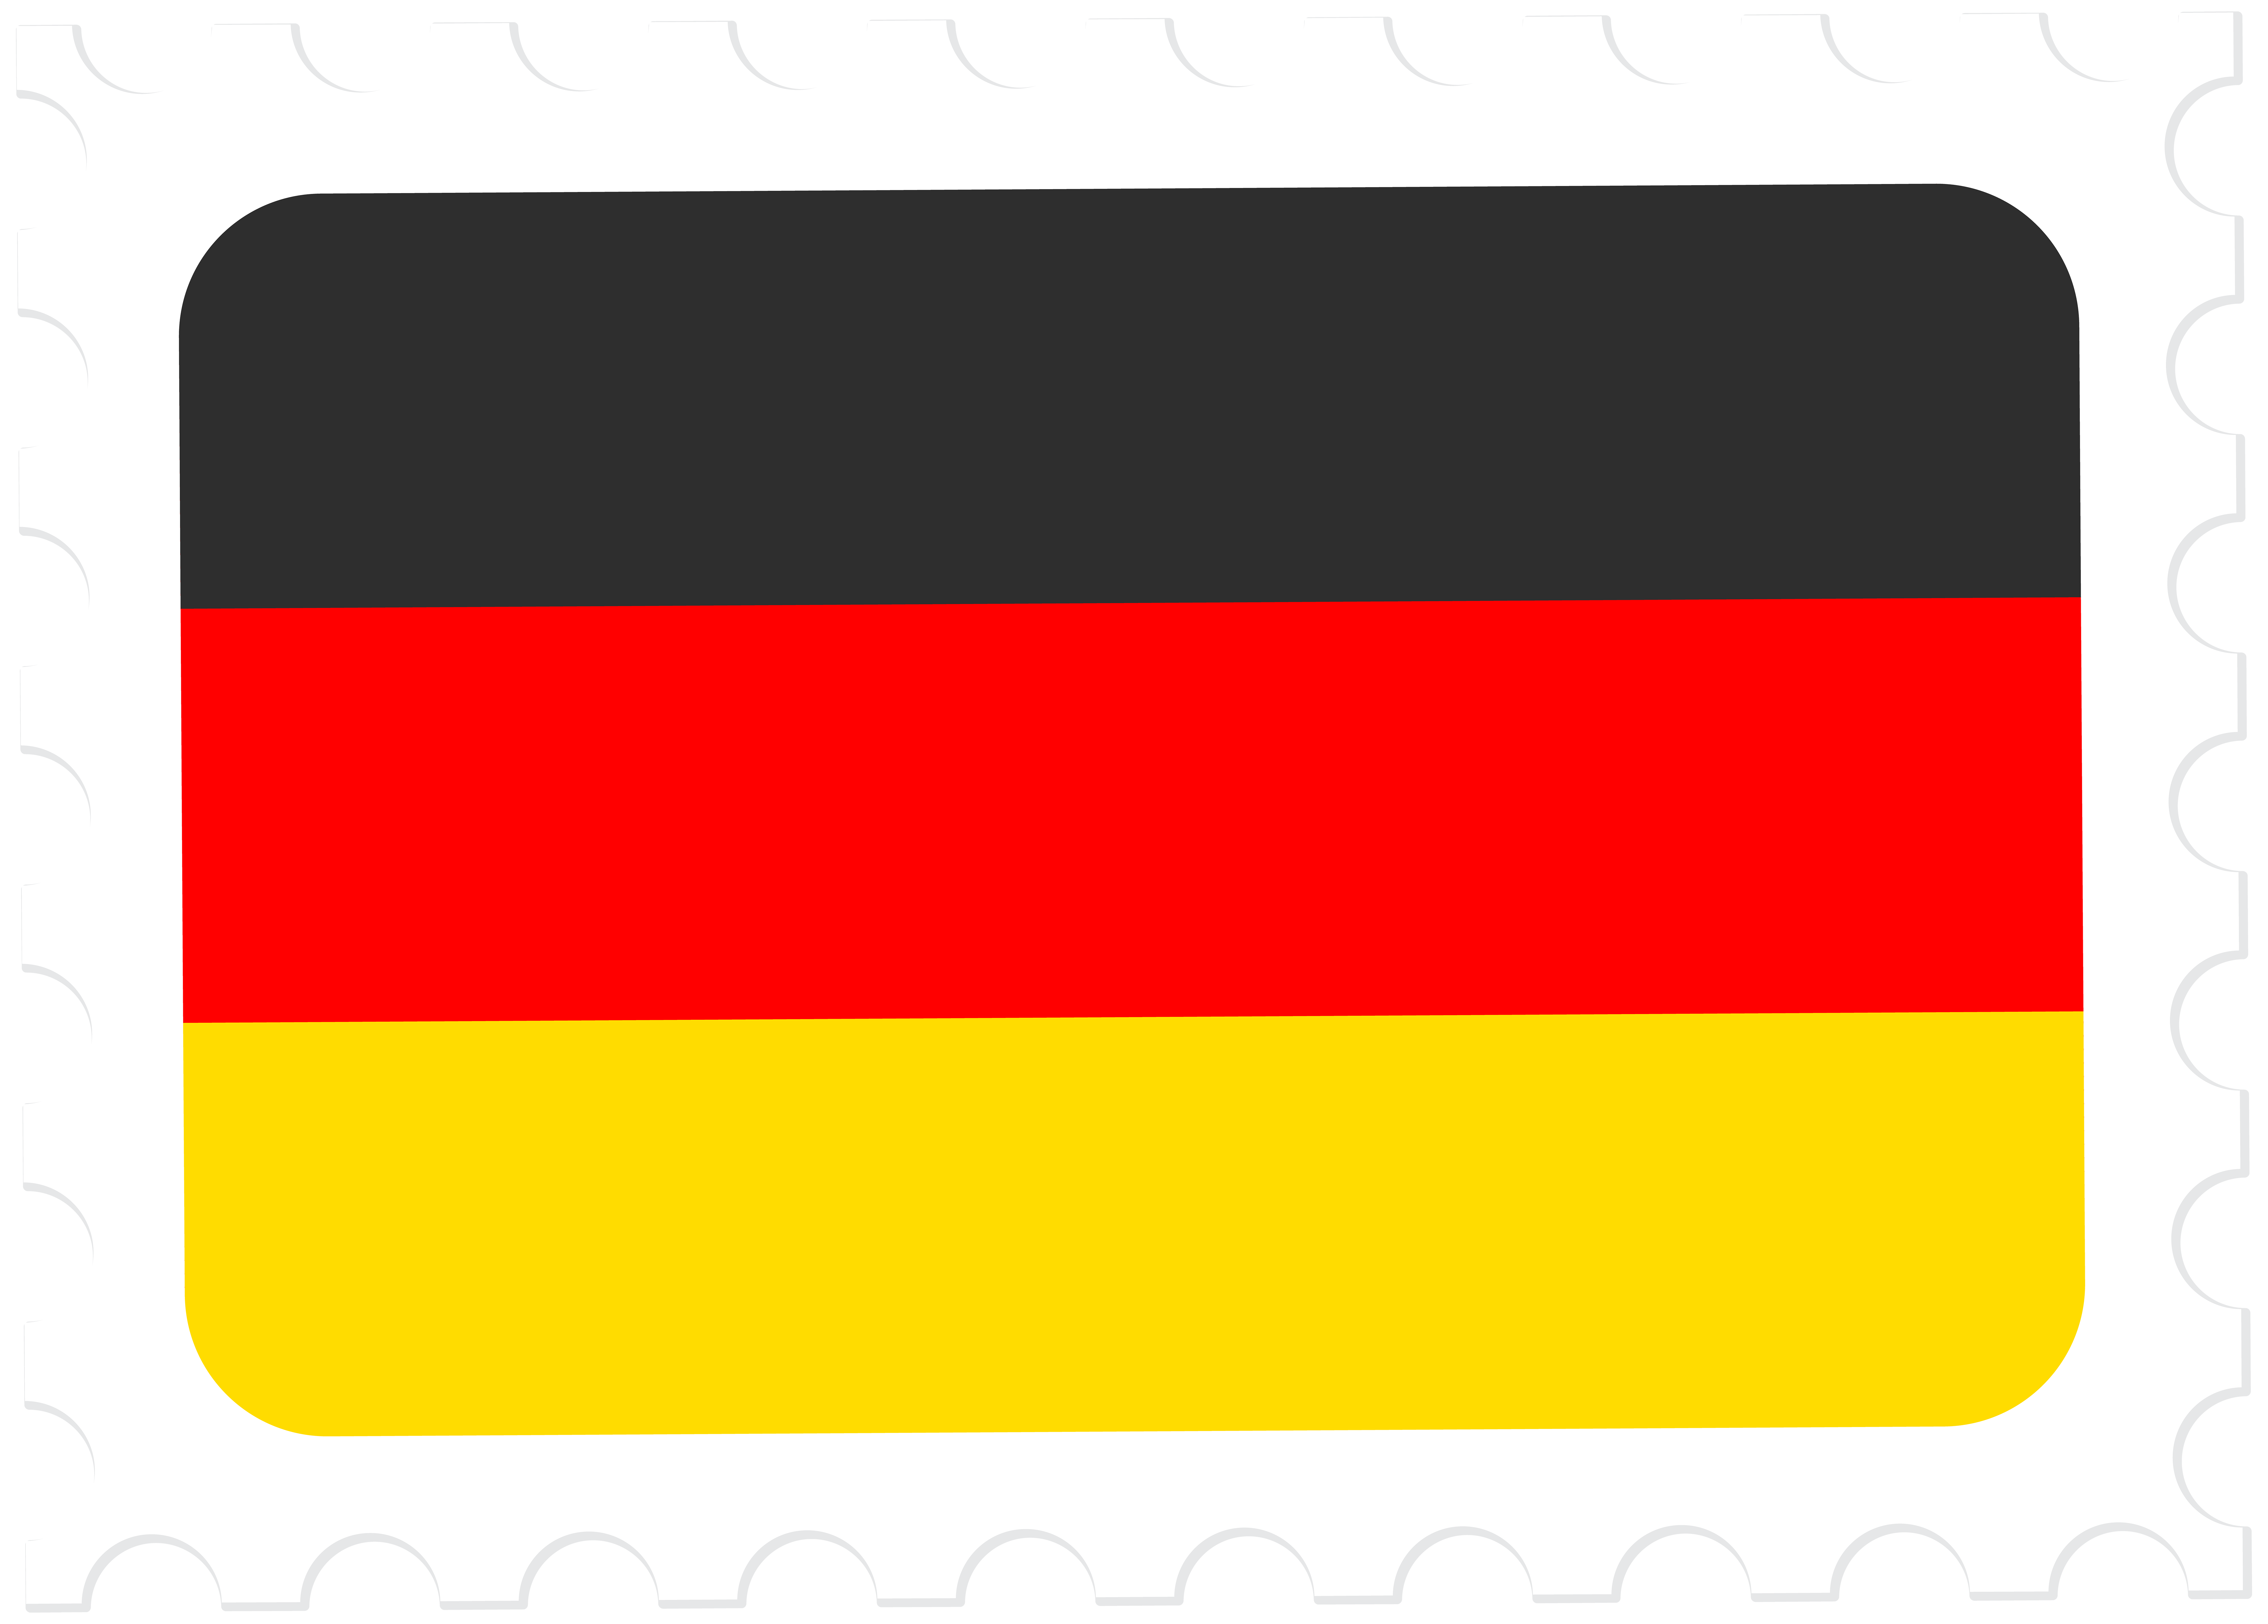 8000x5729 Germany Flag Postage Stamp Png Clip Art Imageu200b Gallery